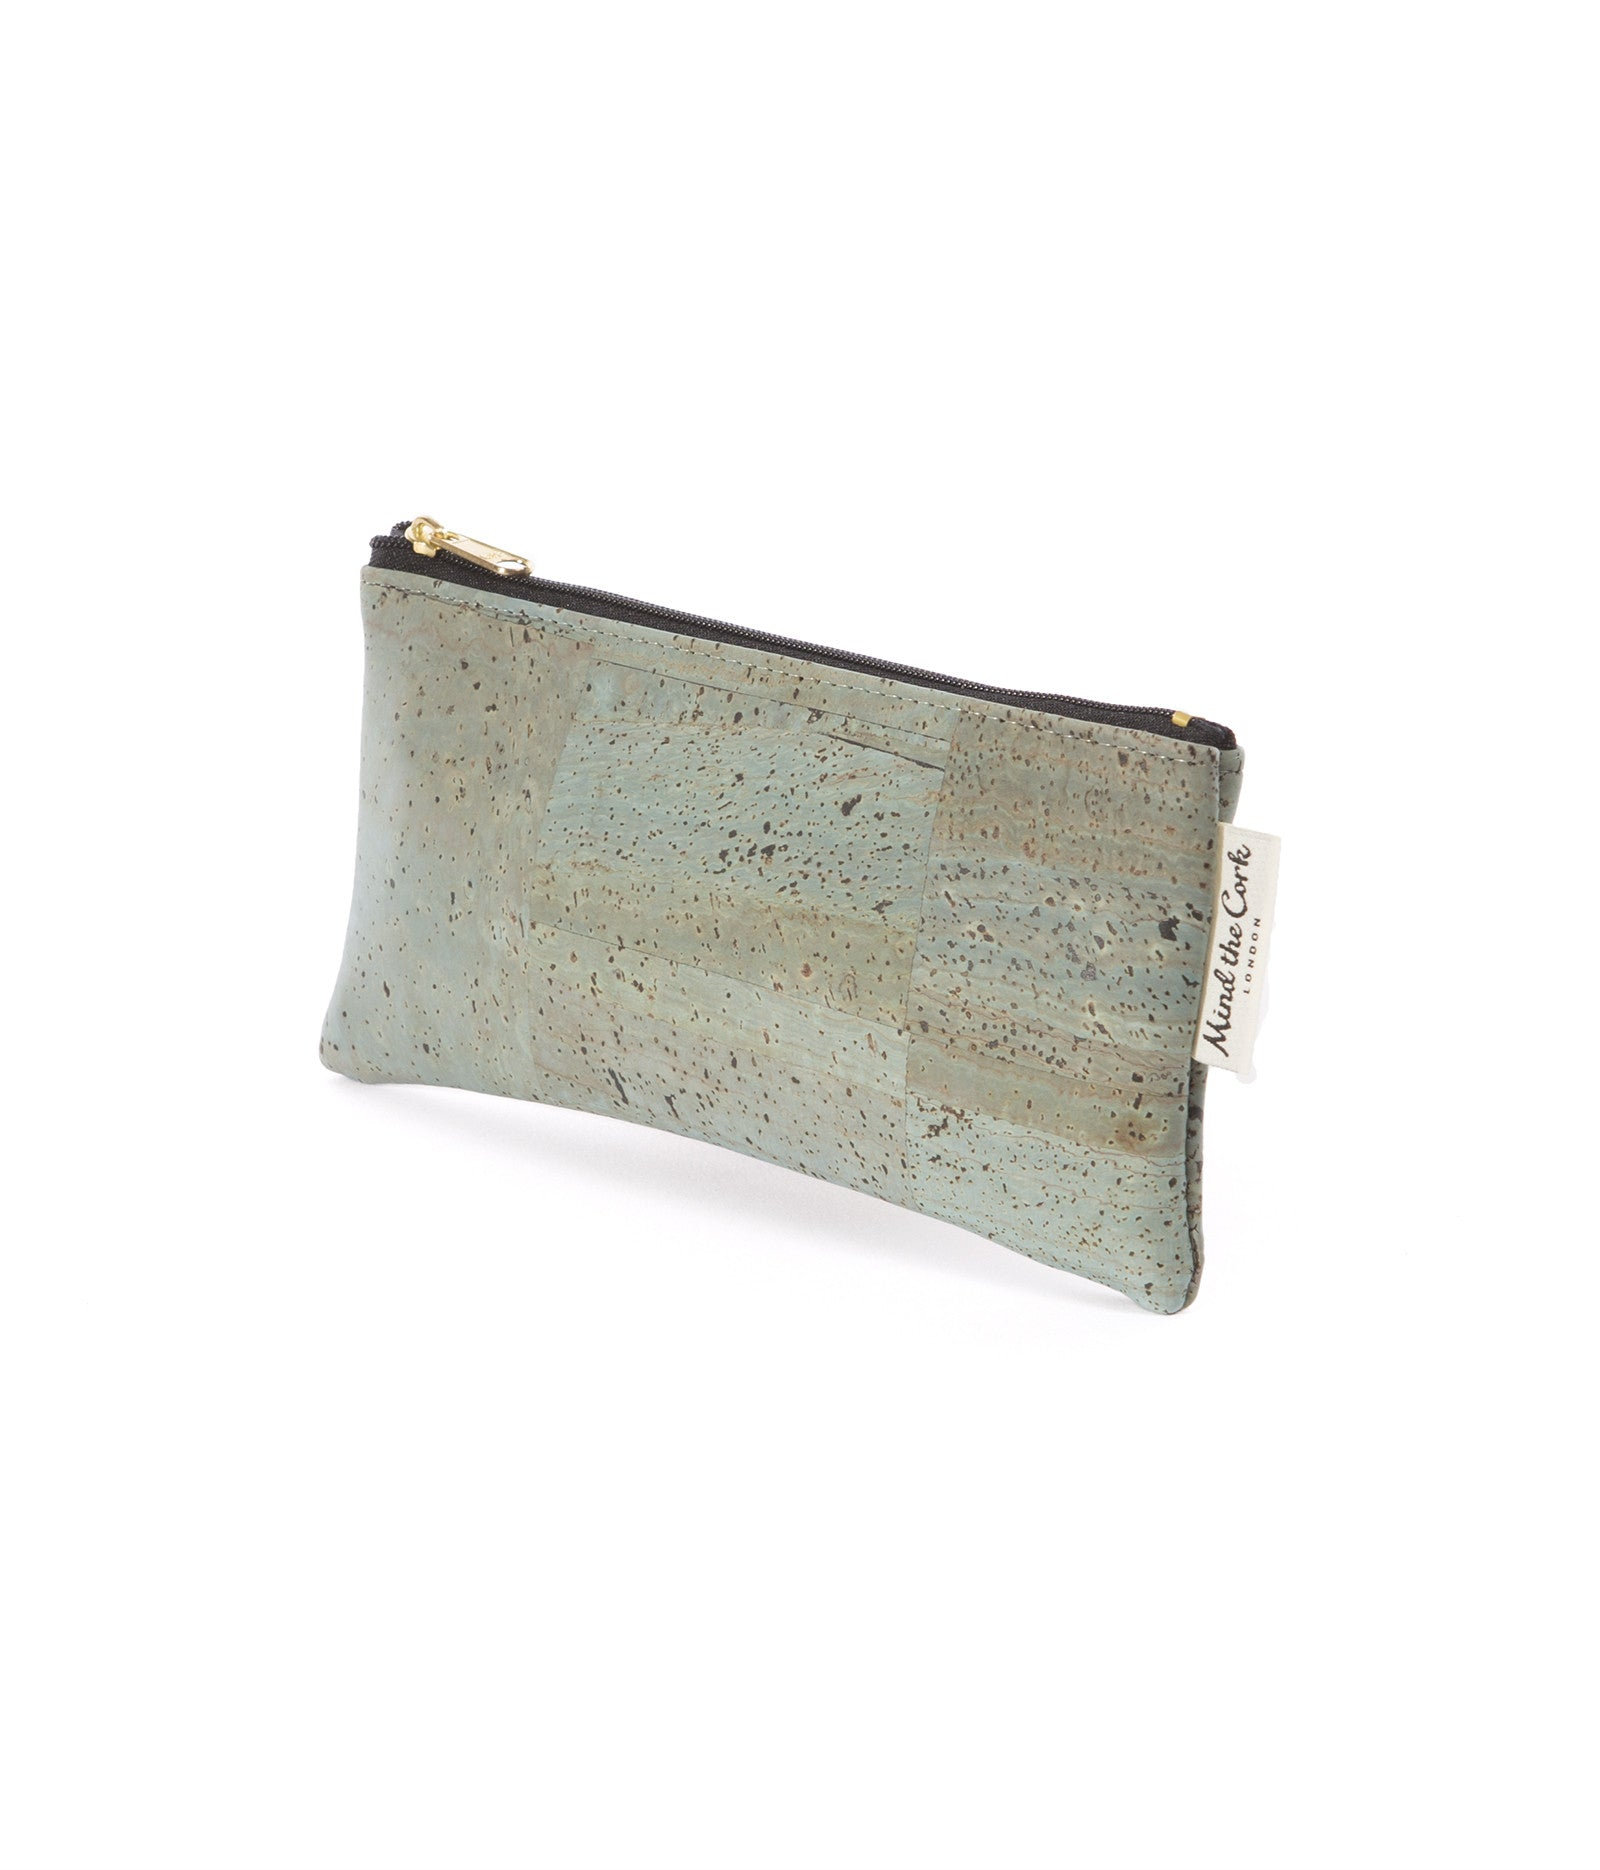 Small Blue Clutch